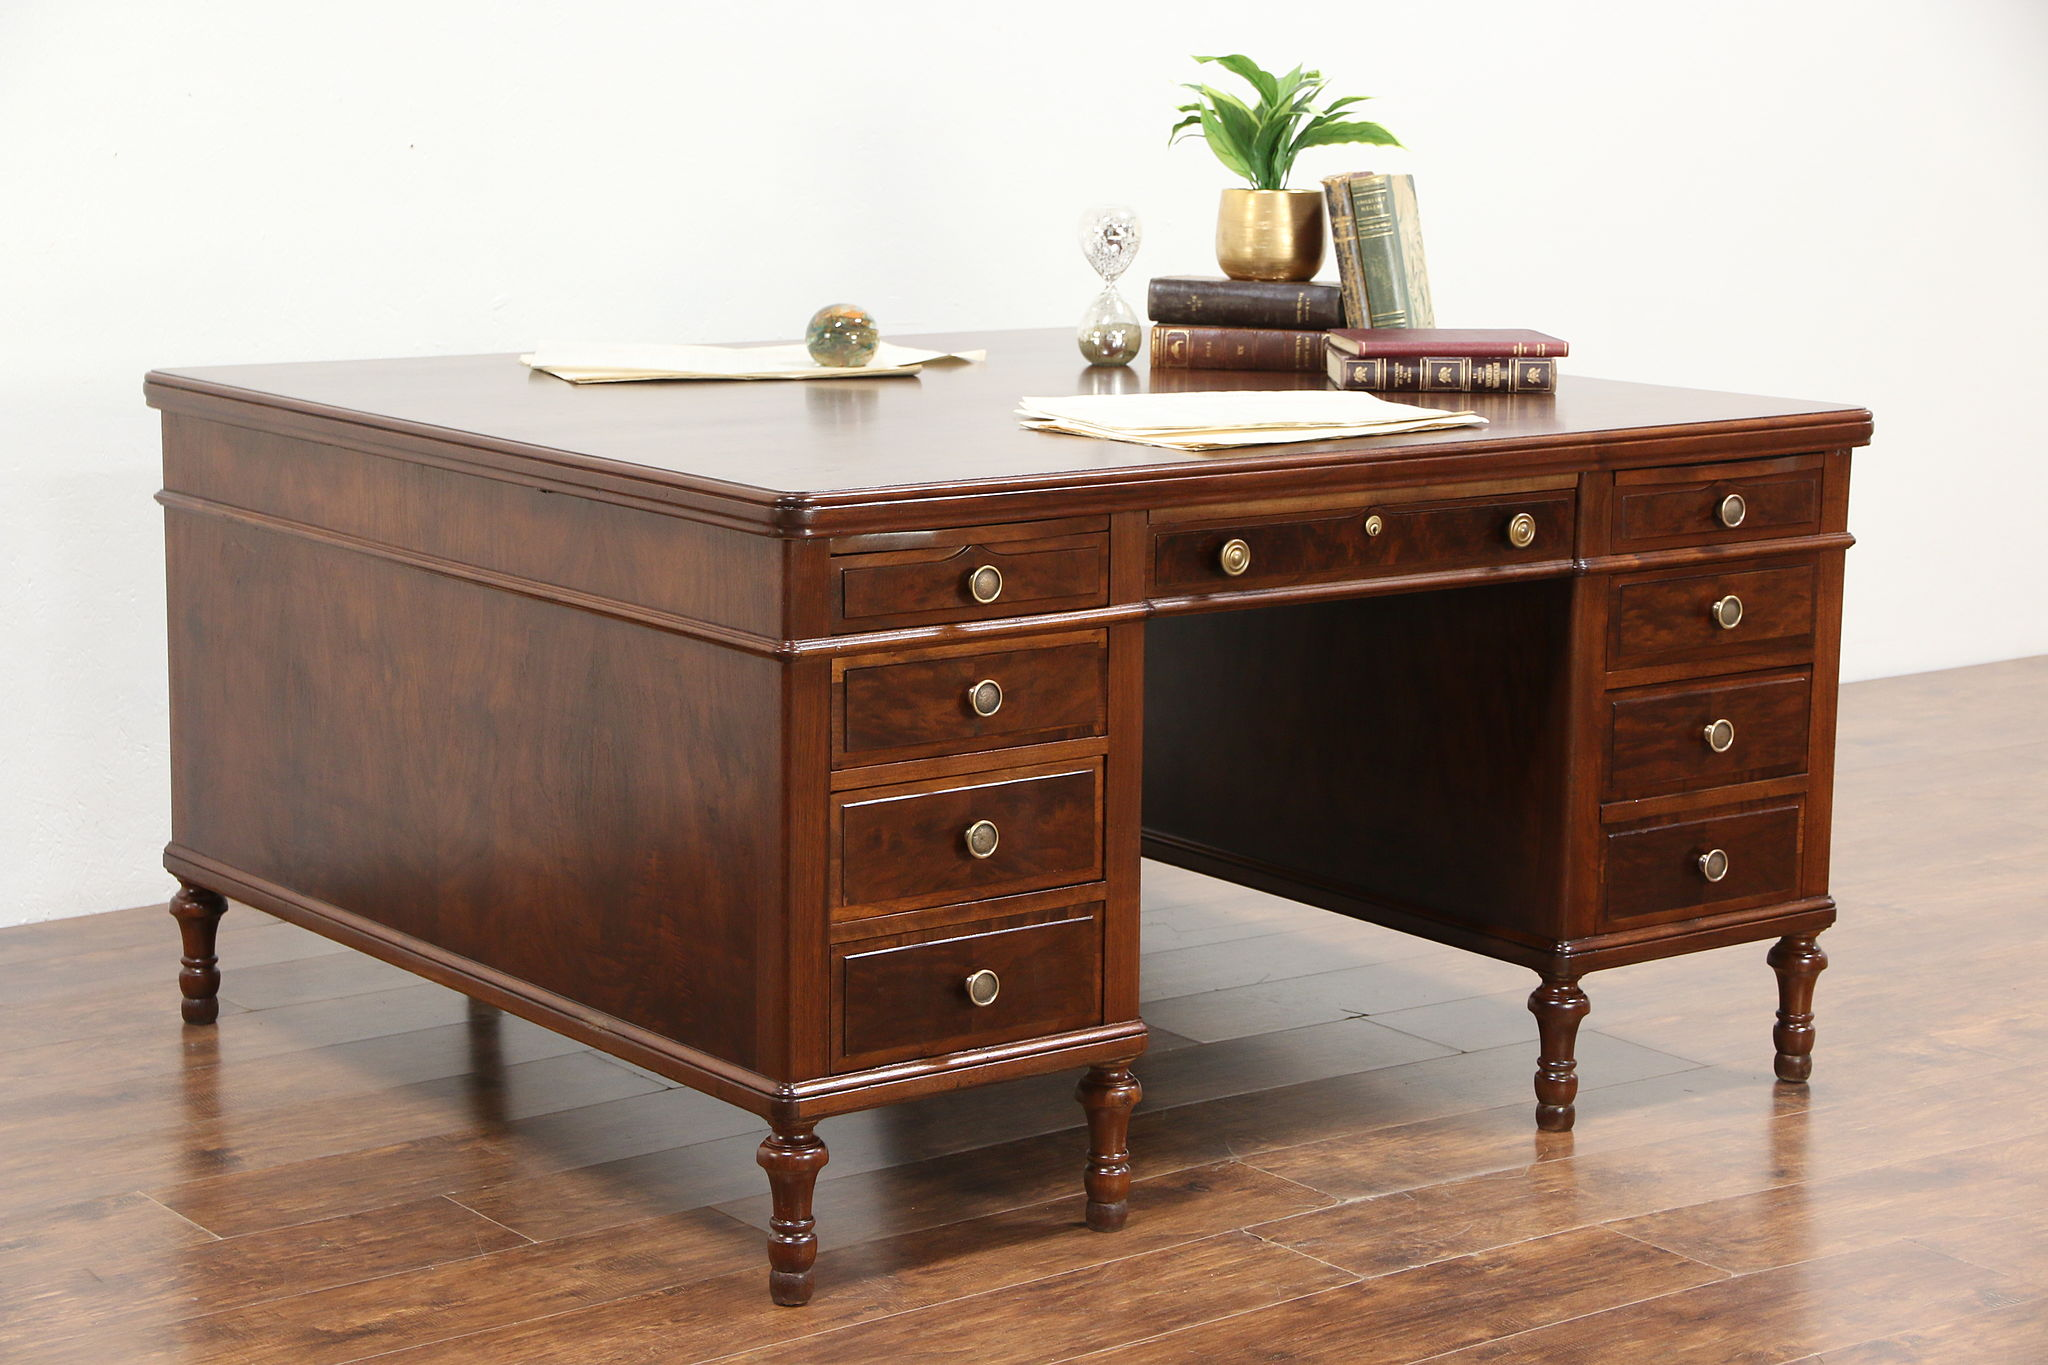 Partner Library or Office Desk  Antique 1915 Walnut   Burl. Desks  Conference Tables   Harp Gallery Antique Furniture  sort by